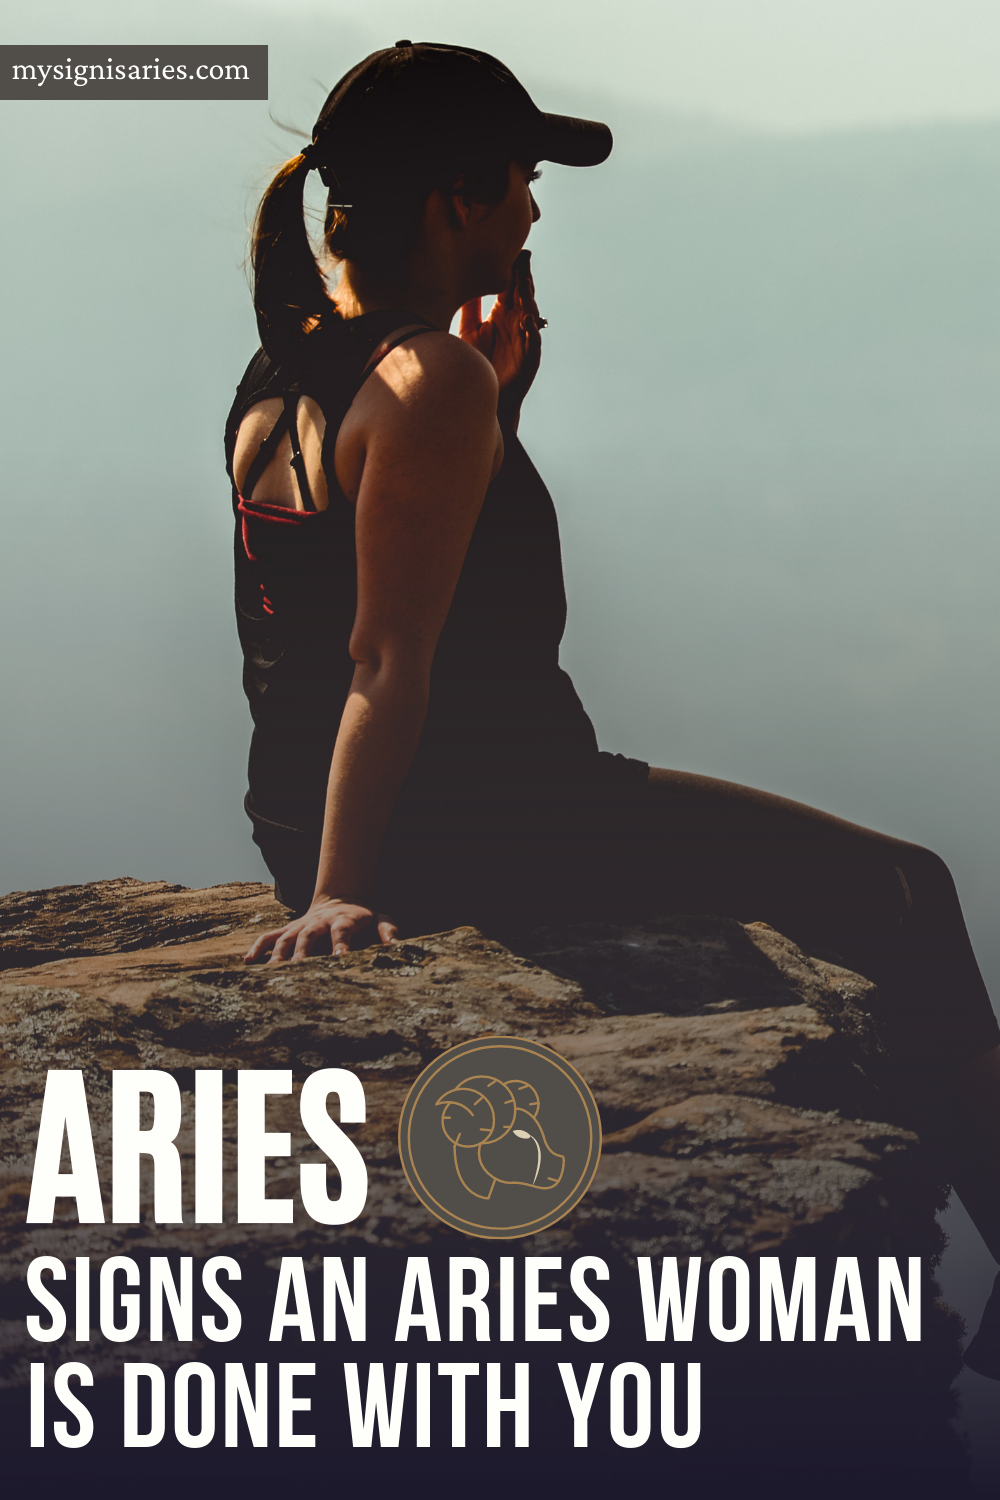 Signs An Aries Woman Is Done With You, Aries compatibility